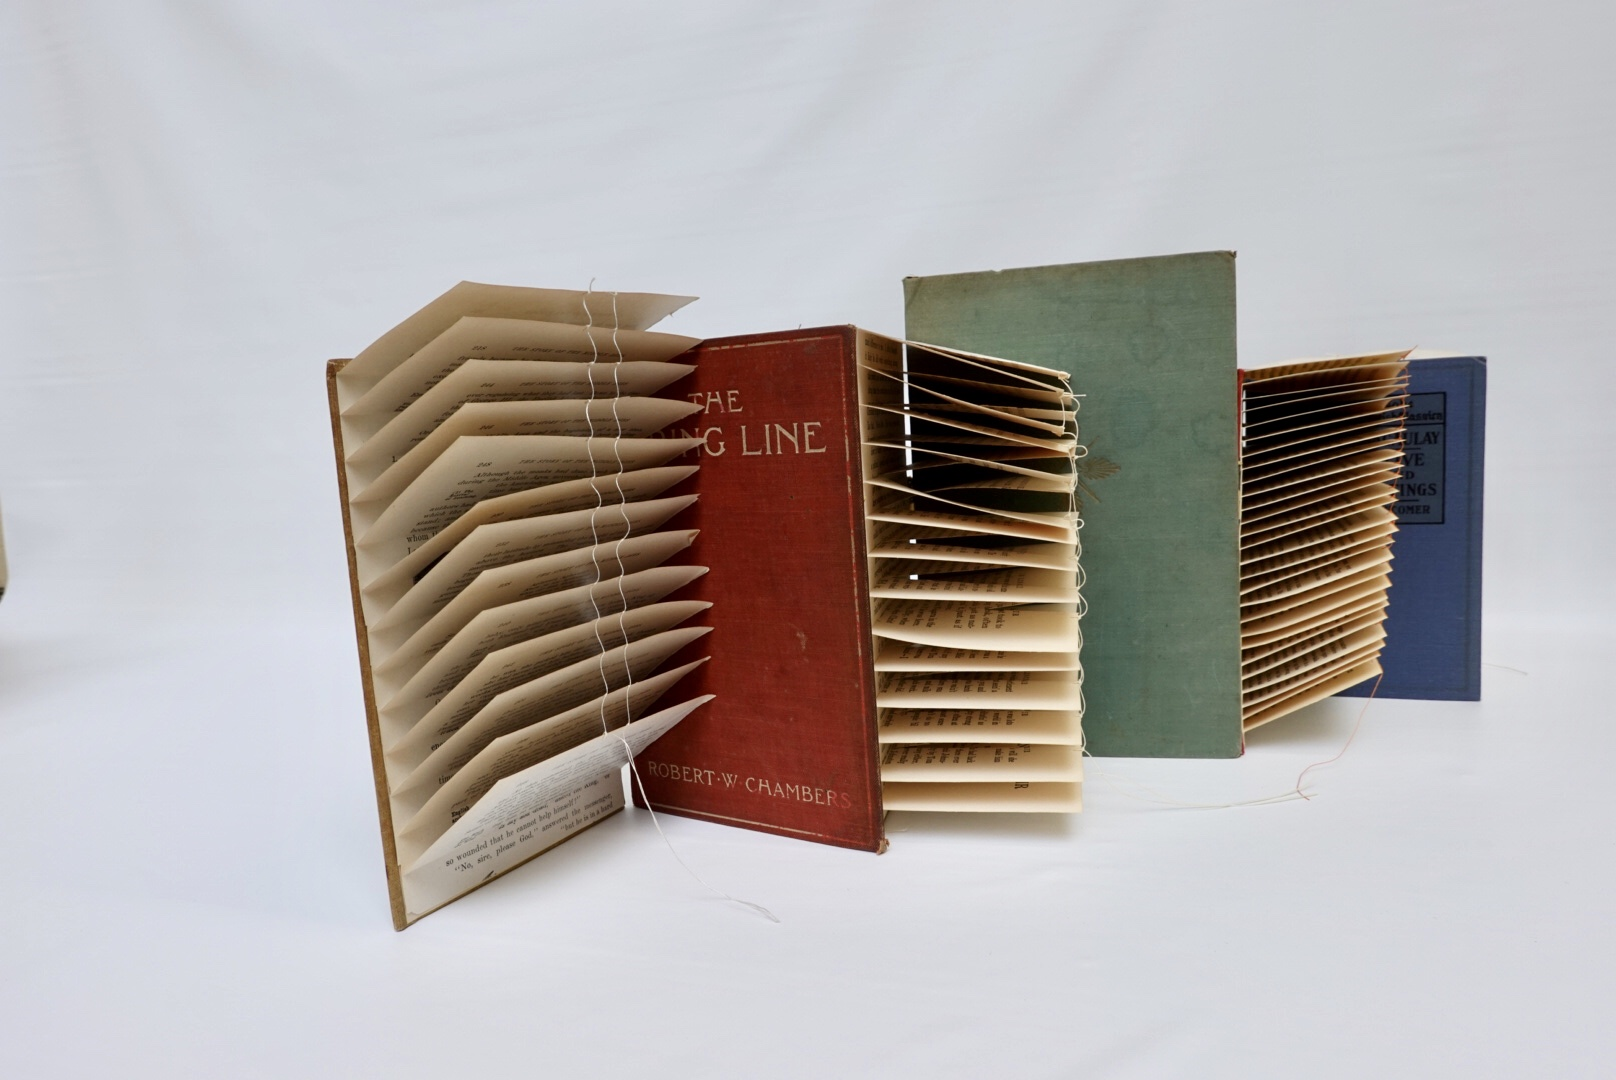 Book art Cover Story interior pages from left view